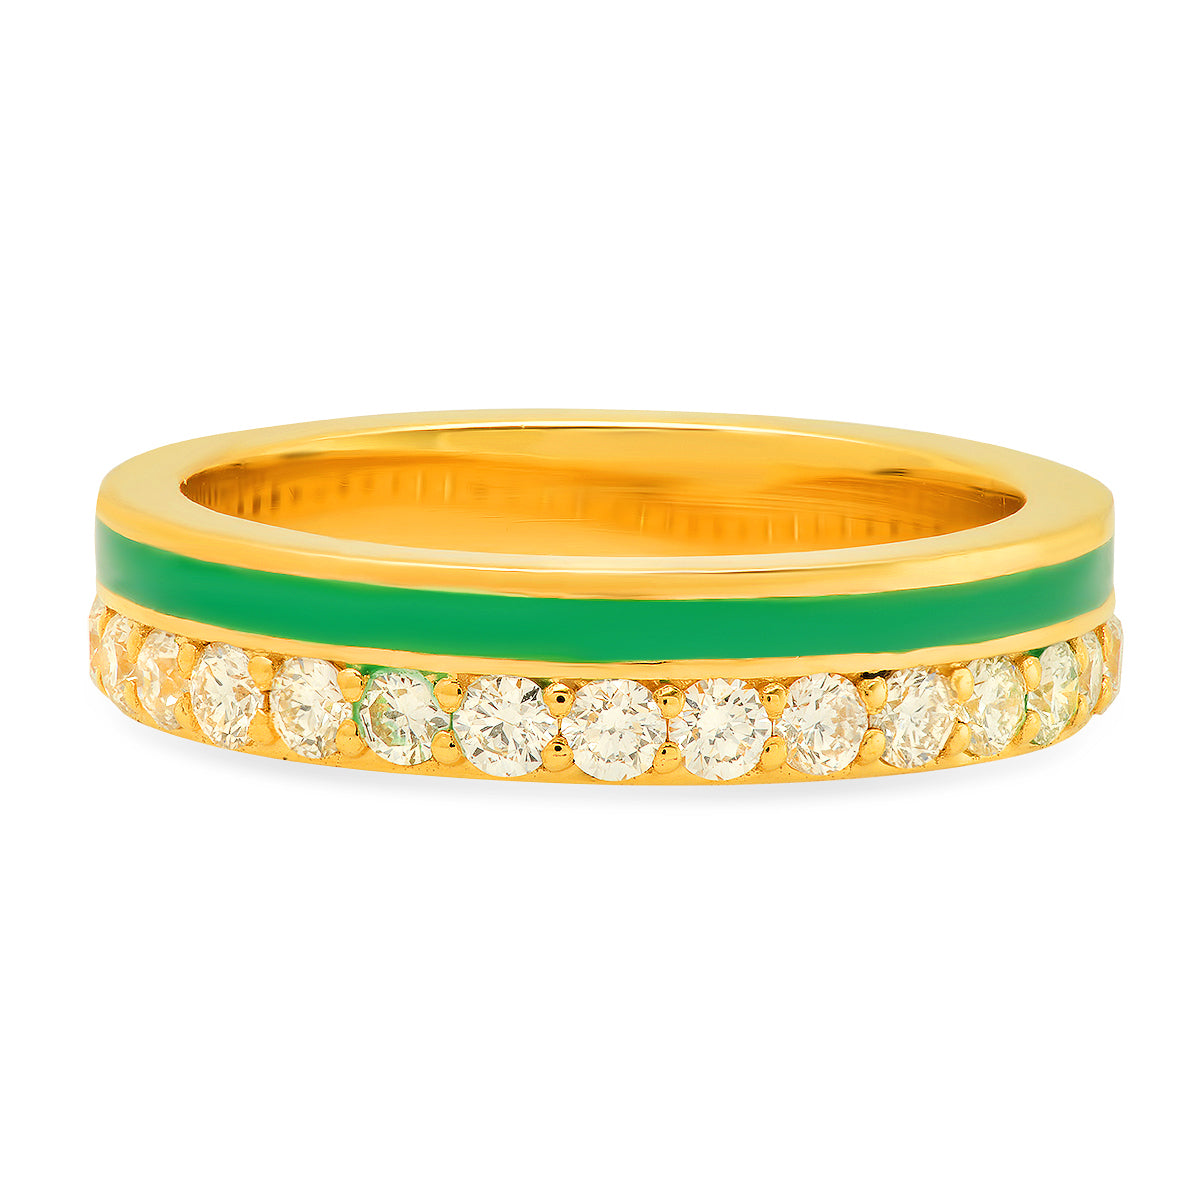 Enamel Diamond Band - Ten Colors